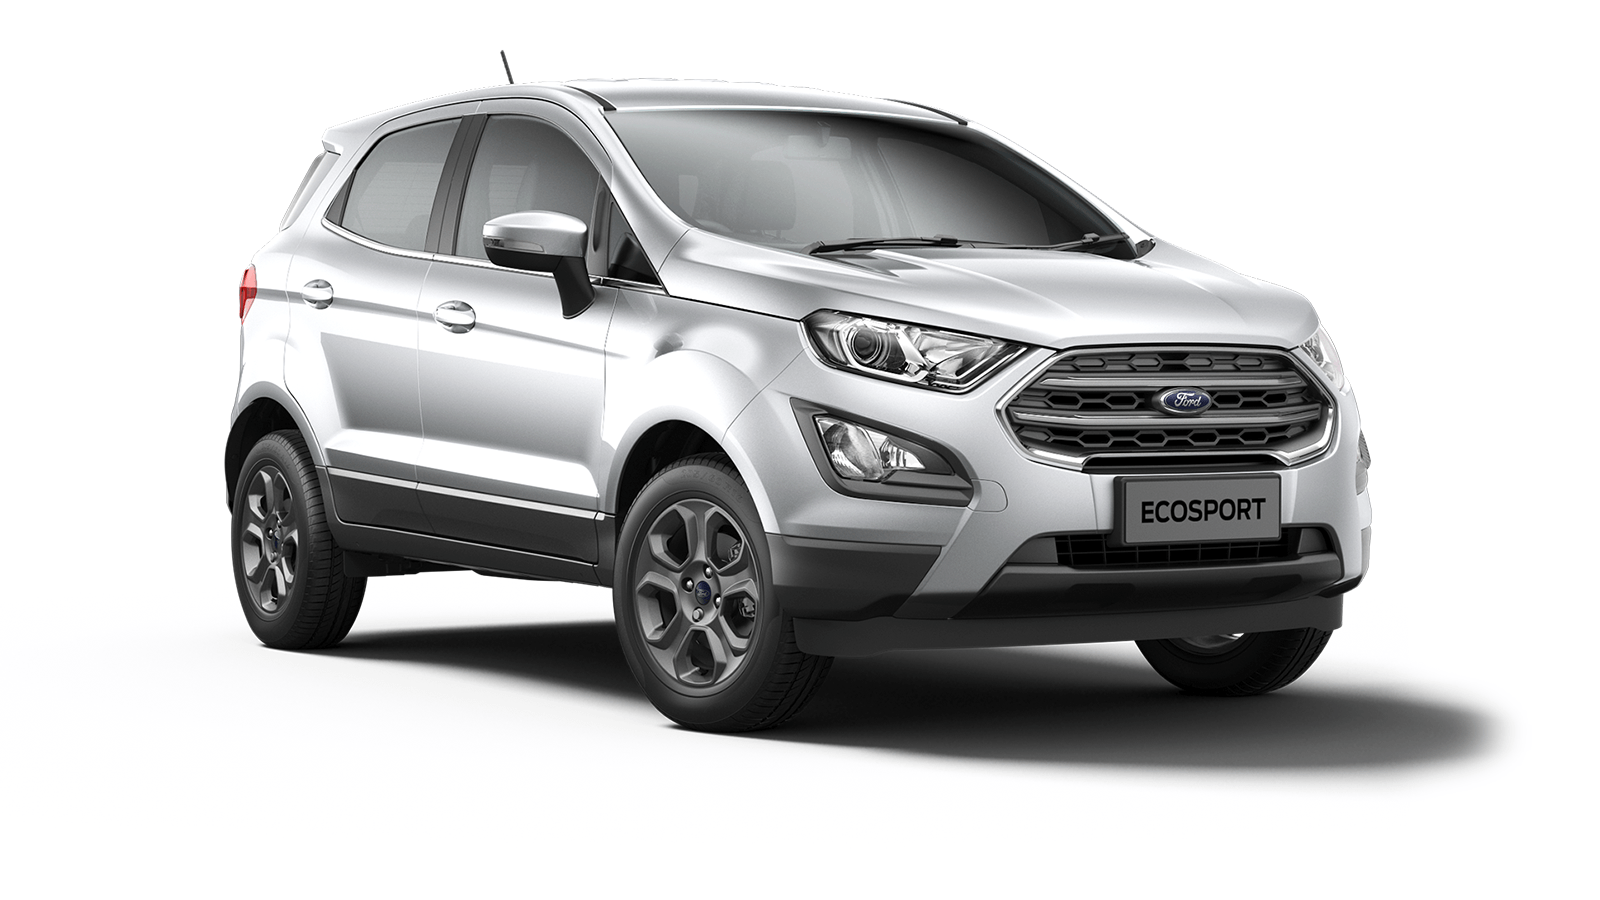 https://www.dealerinternet.co.uk/images/B515%20ECOSPORT/2019/5%20Door/Zetec/MOONDUST-SILVER.png